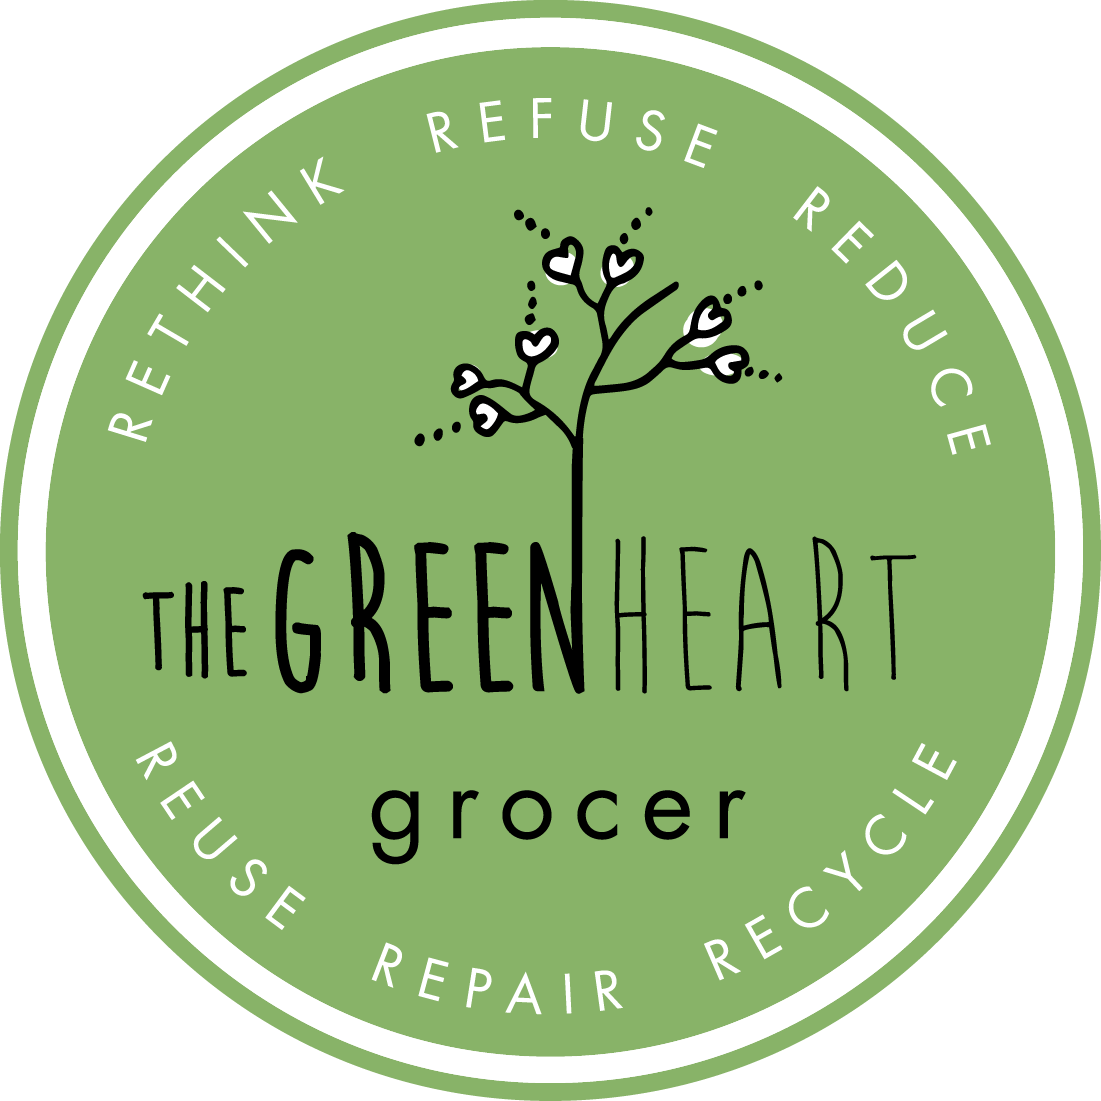 The Green Heart Grocer